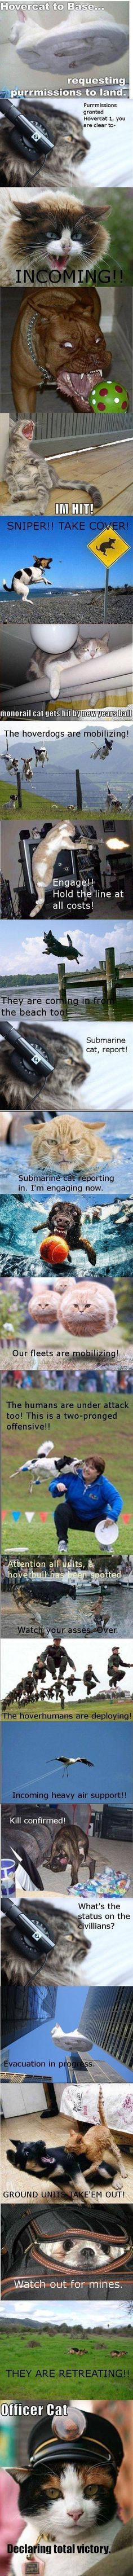 Incoming!  Hilarious, cats vs dogs military manouver... :D